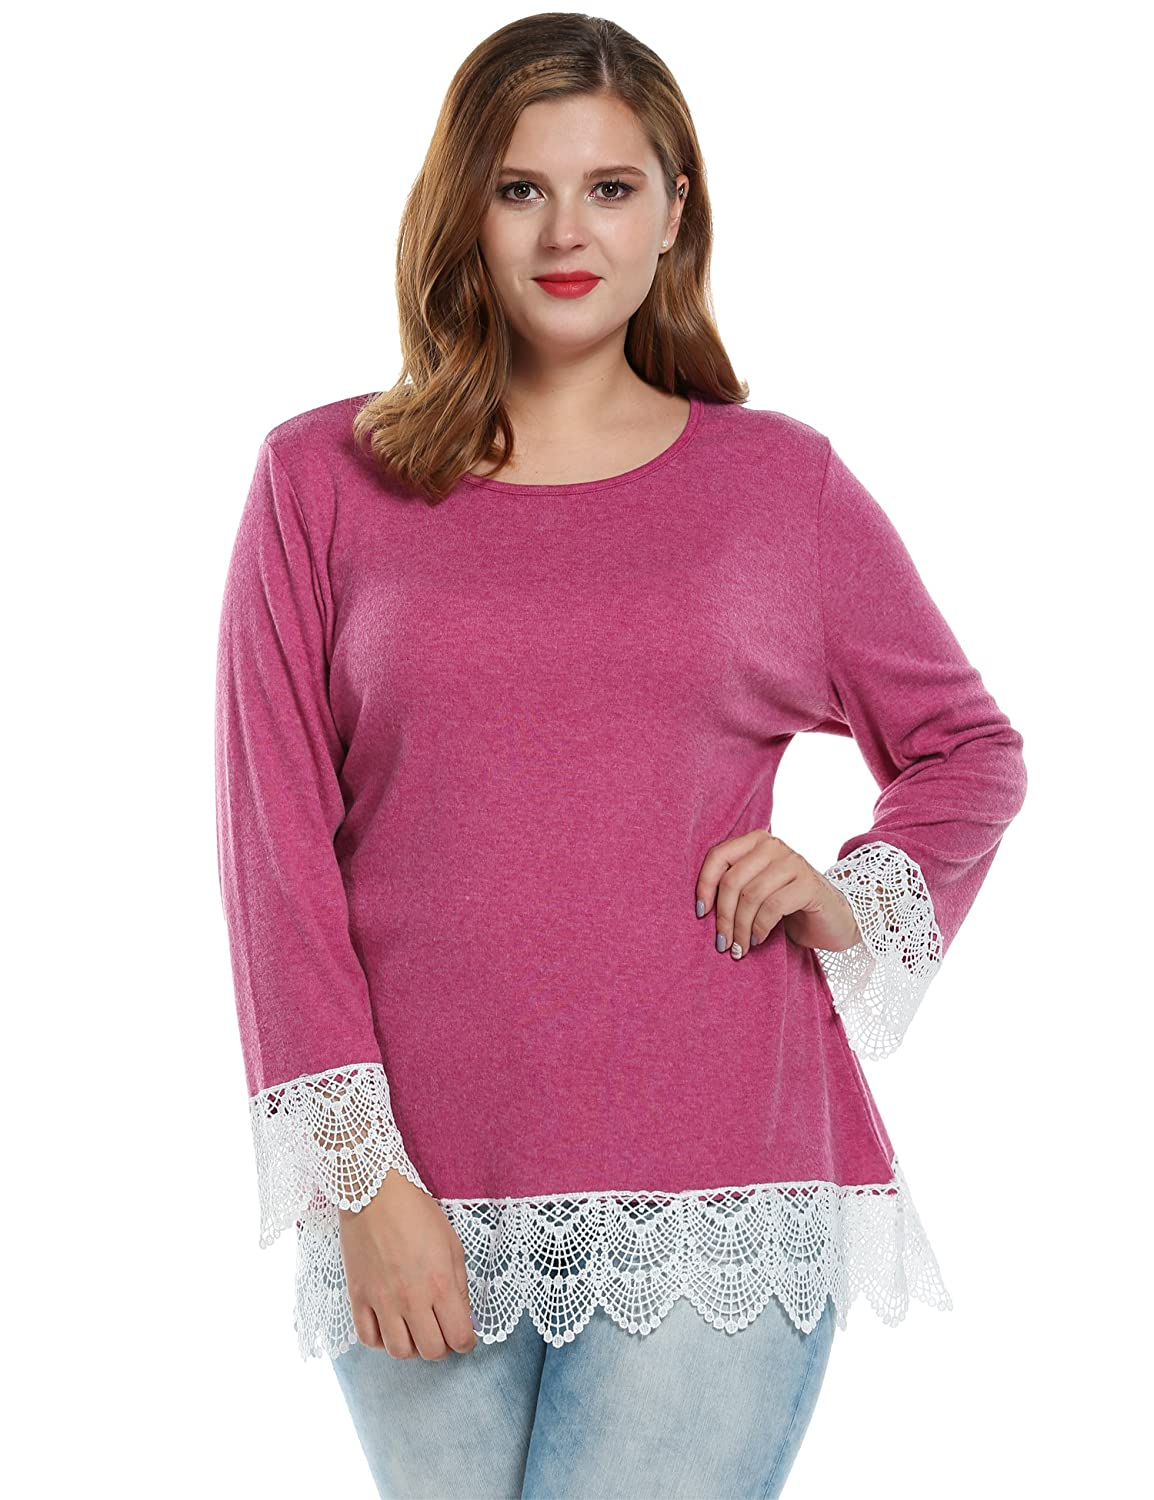 Meaneor Women's Plus Size Long Sleeve Knit Top with Lace MAH005534